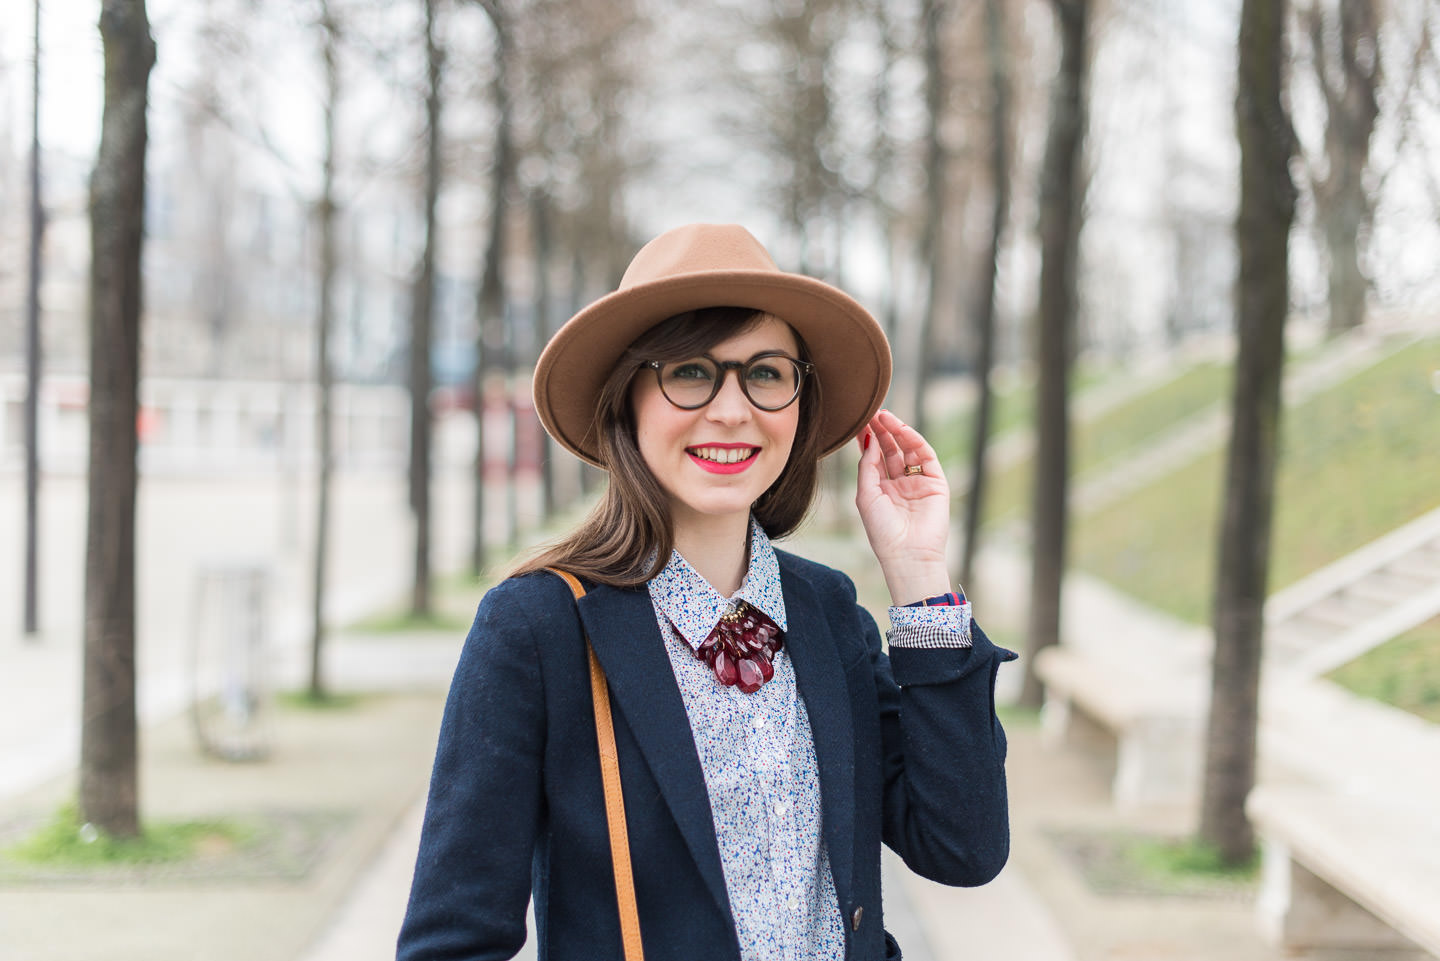 Blog-mode-Mode-And-The-City-looks-collaboration-clarks-orla-kiely-2-4